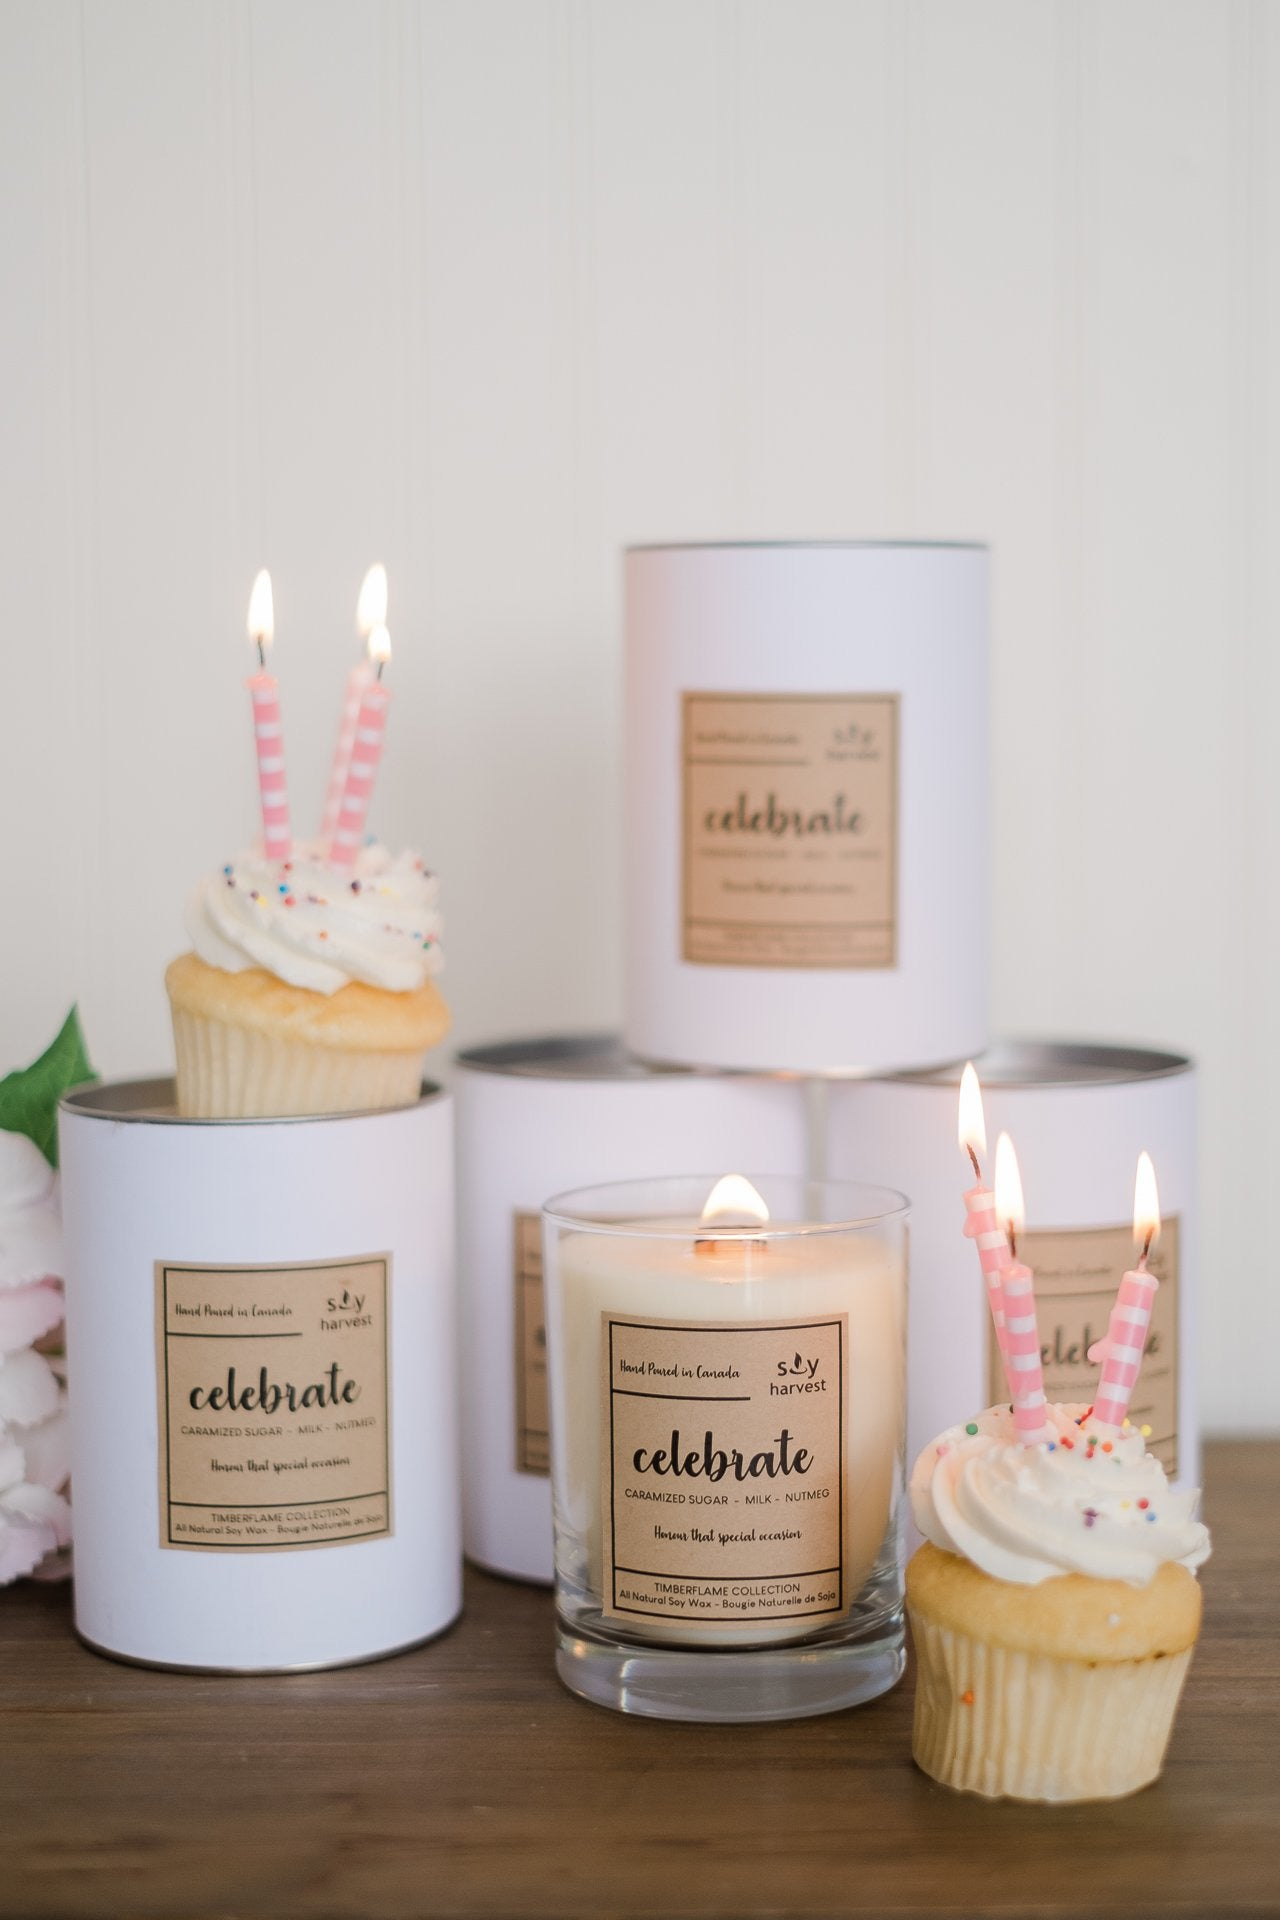 Soy Harvest Celebrate Candle